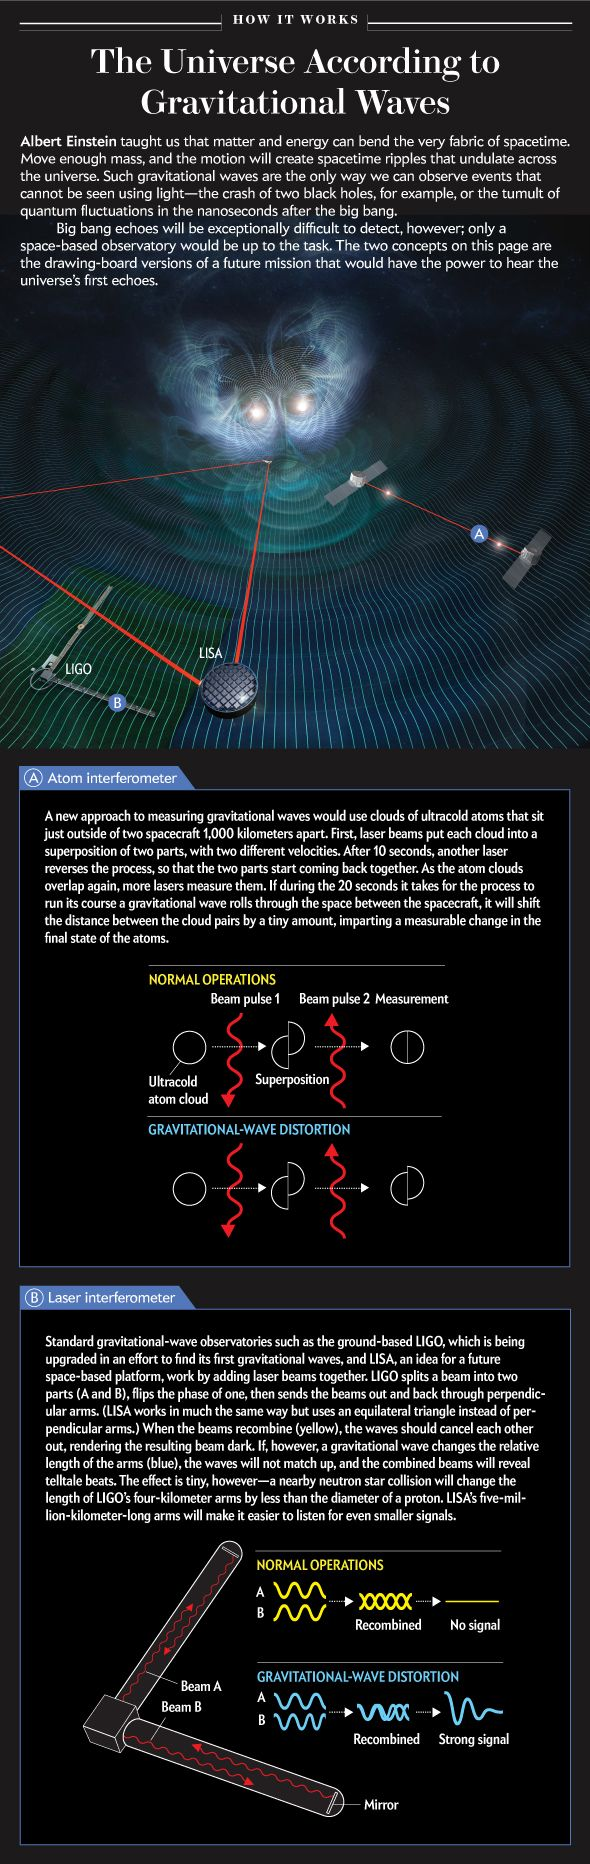 Infographic from Scientific American breaks down the technology behind our ongoing search for ripples in spacetime